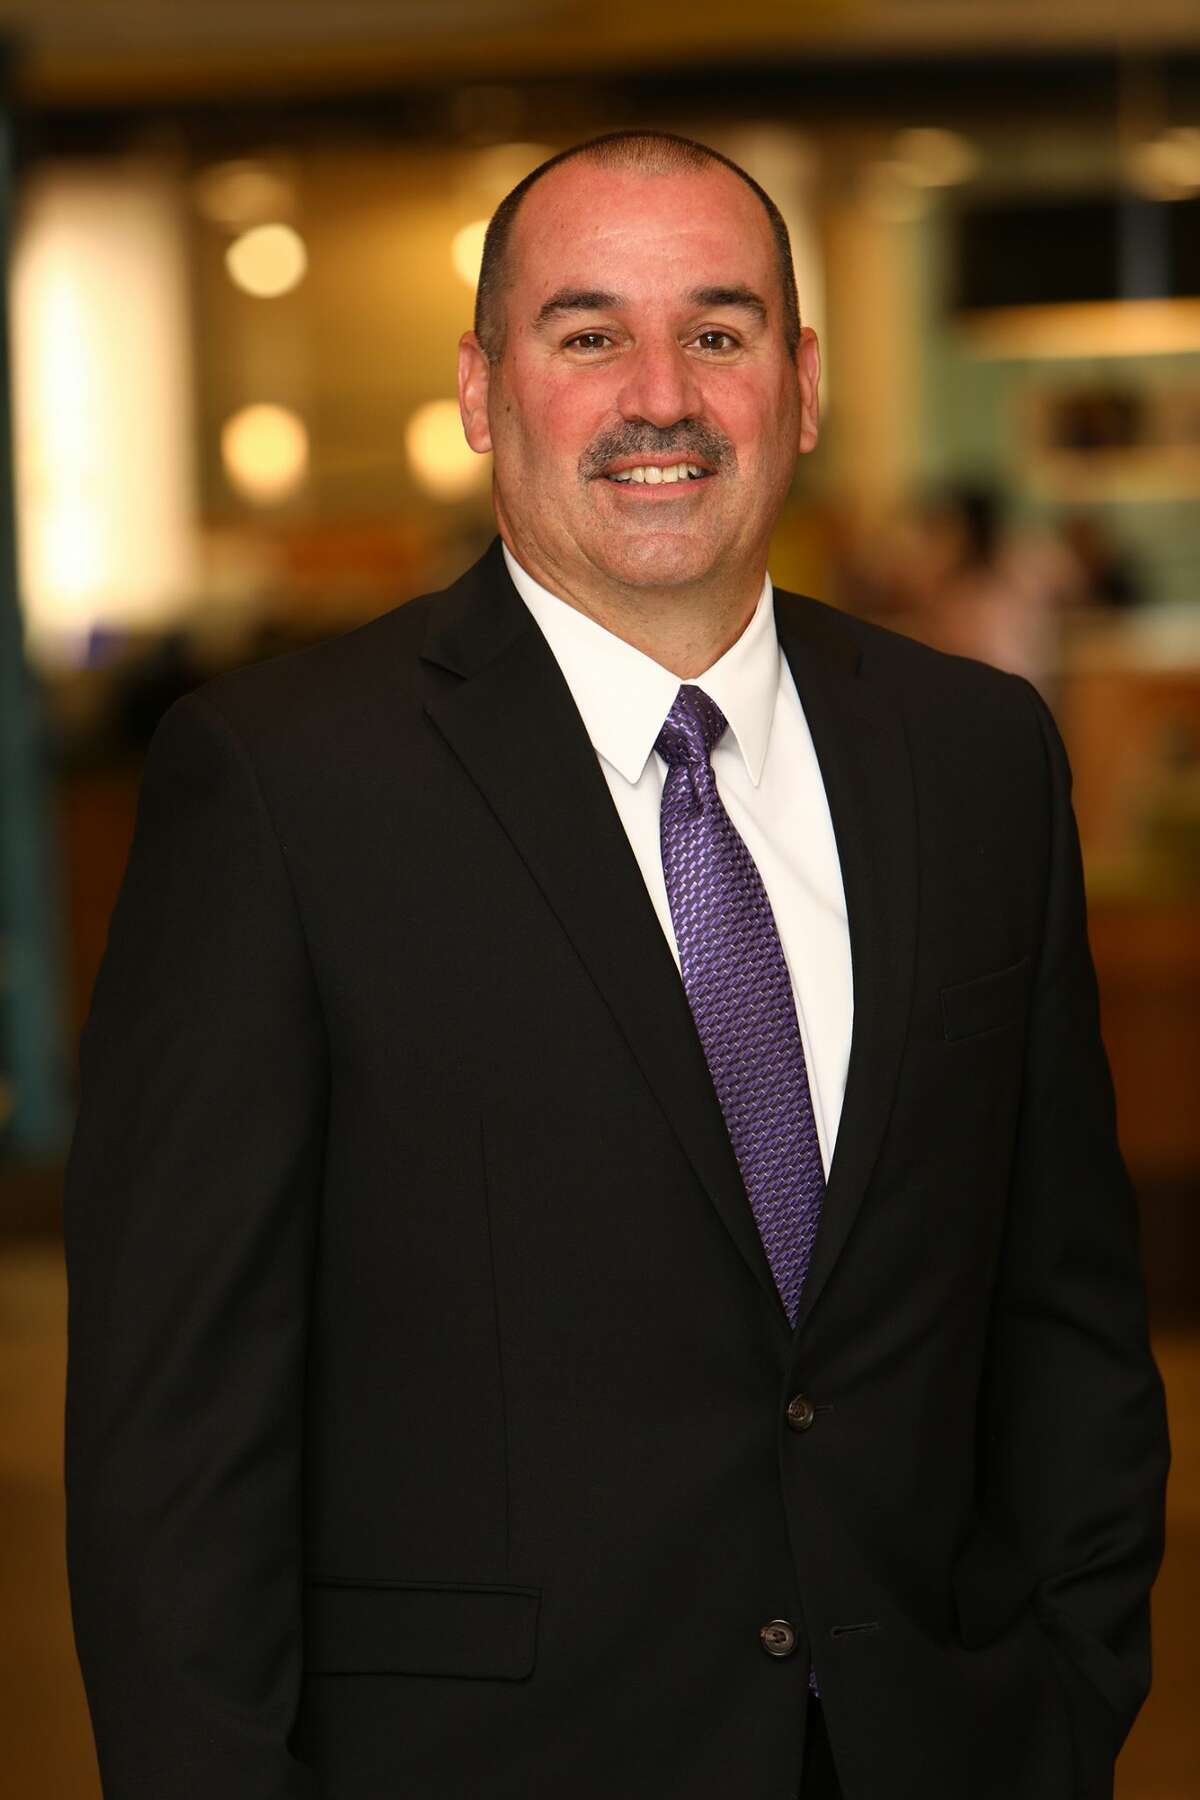 Chris McKenna is celebrating two years as the president and CEO of CAP COM Federal Credit Union, a locally headquartered financial institution with 140,000 members and 12 Capital Region locations. McKenna is this week's 20 Things.